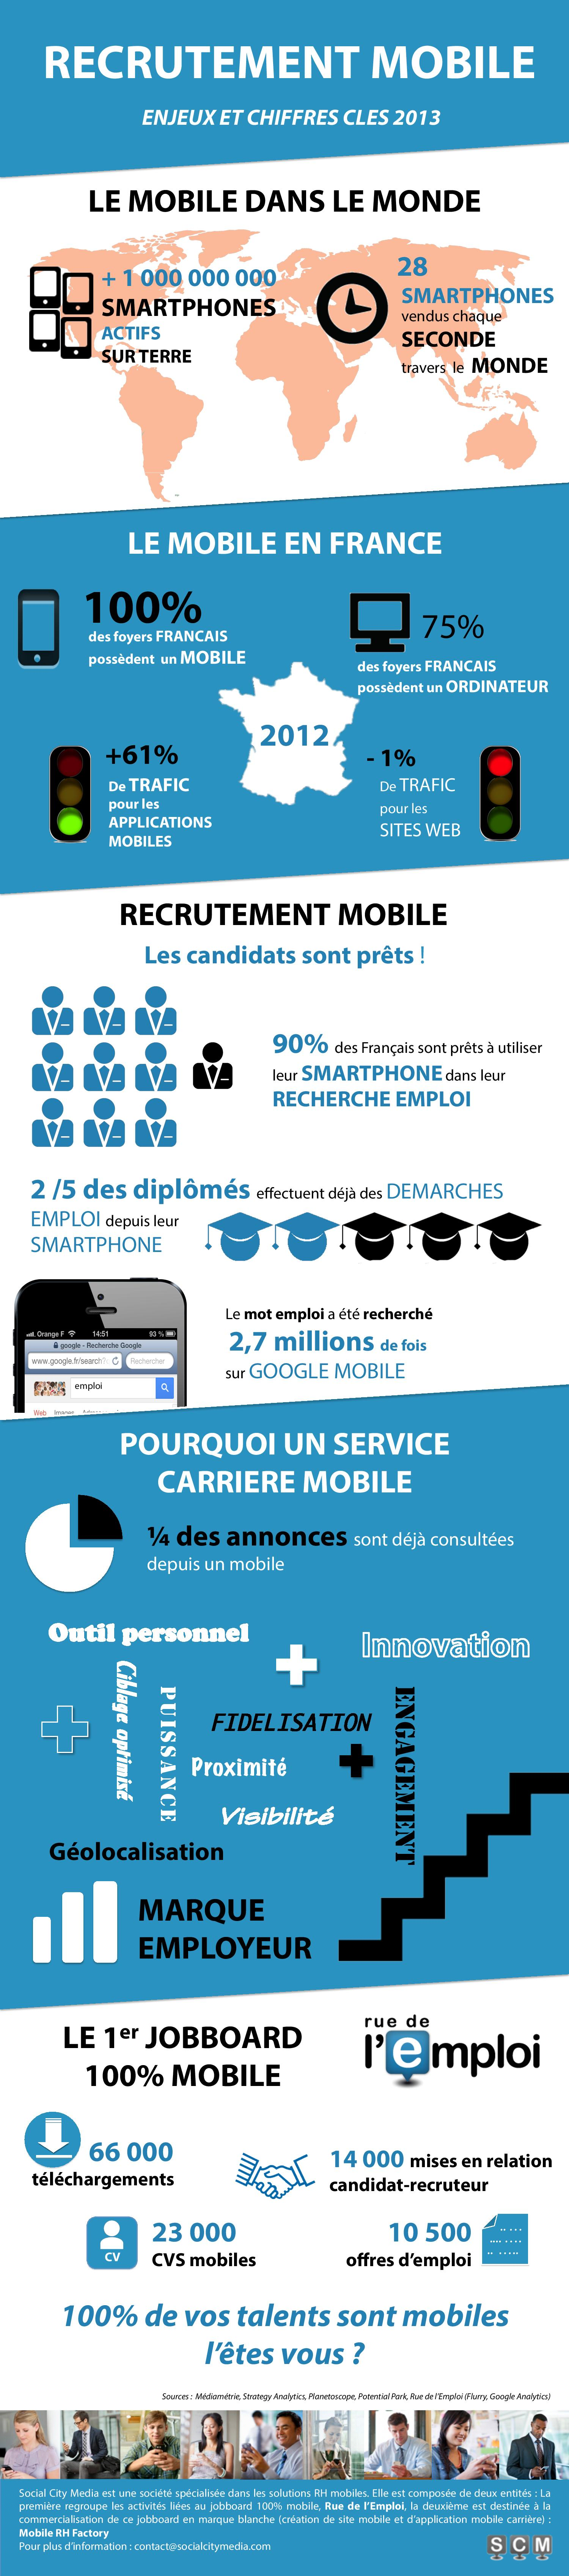 Infographie Recrutement Mobile